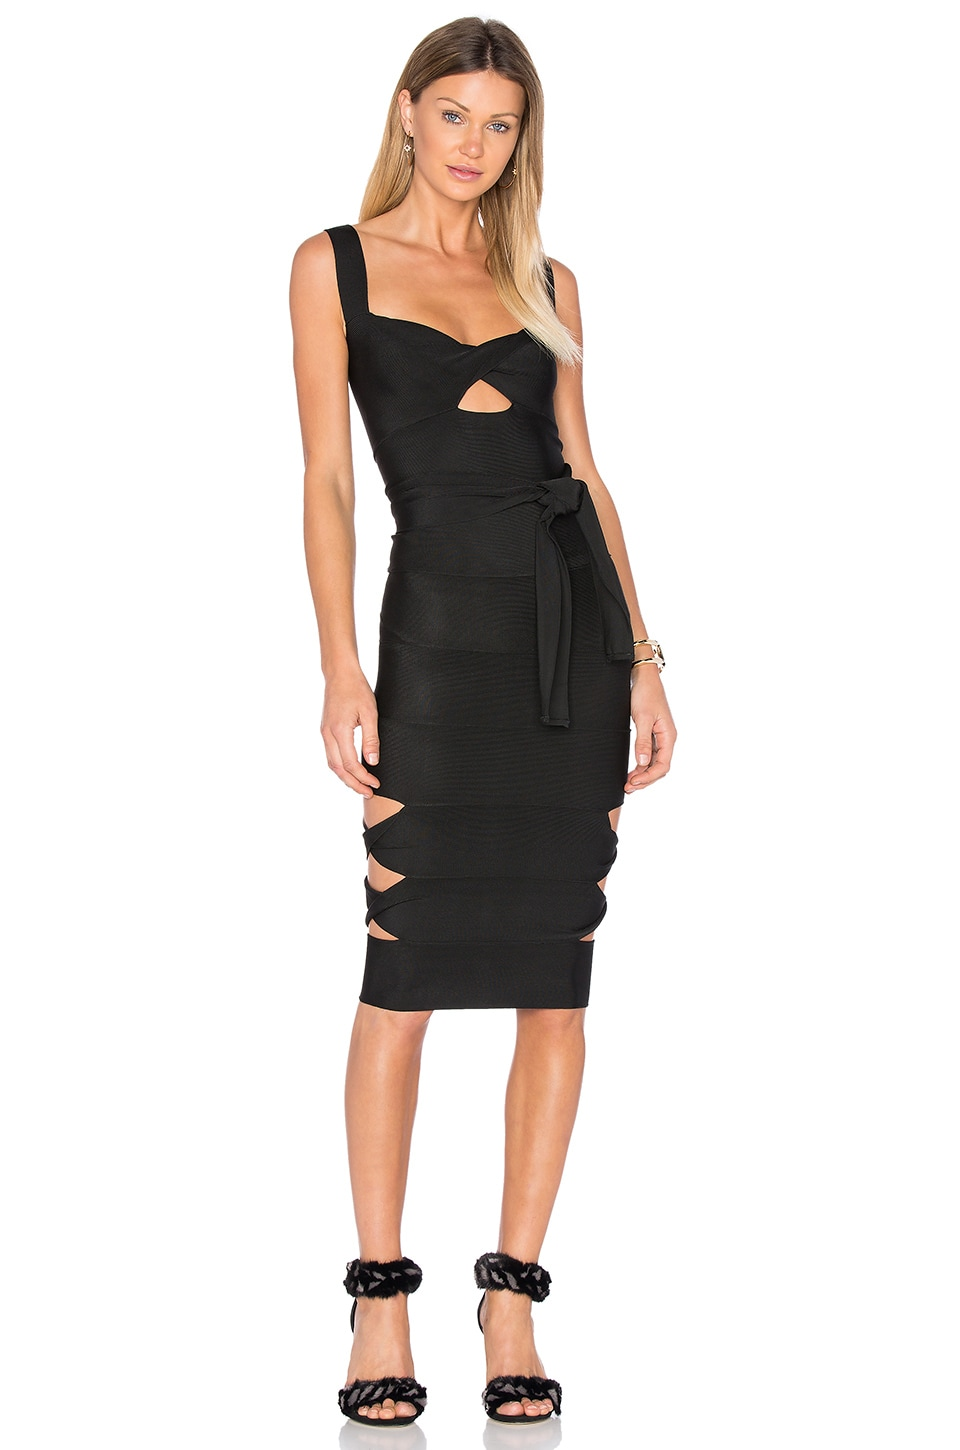 Sophia Cut Out Midi Dress by LOLITTA